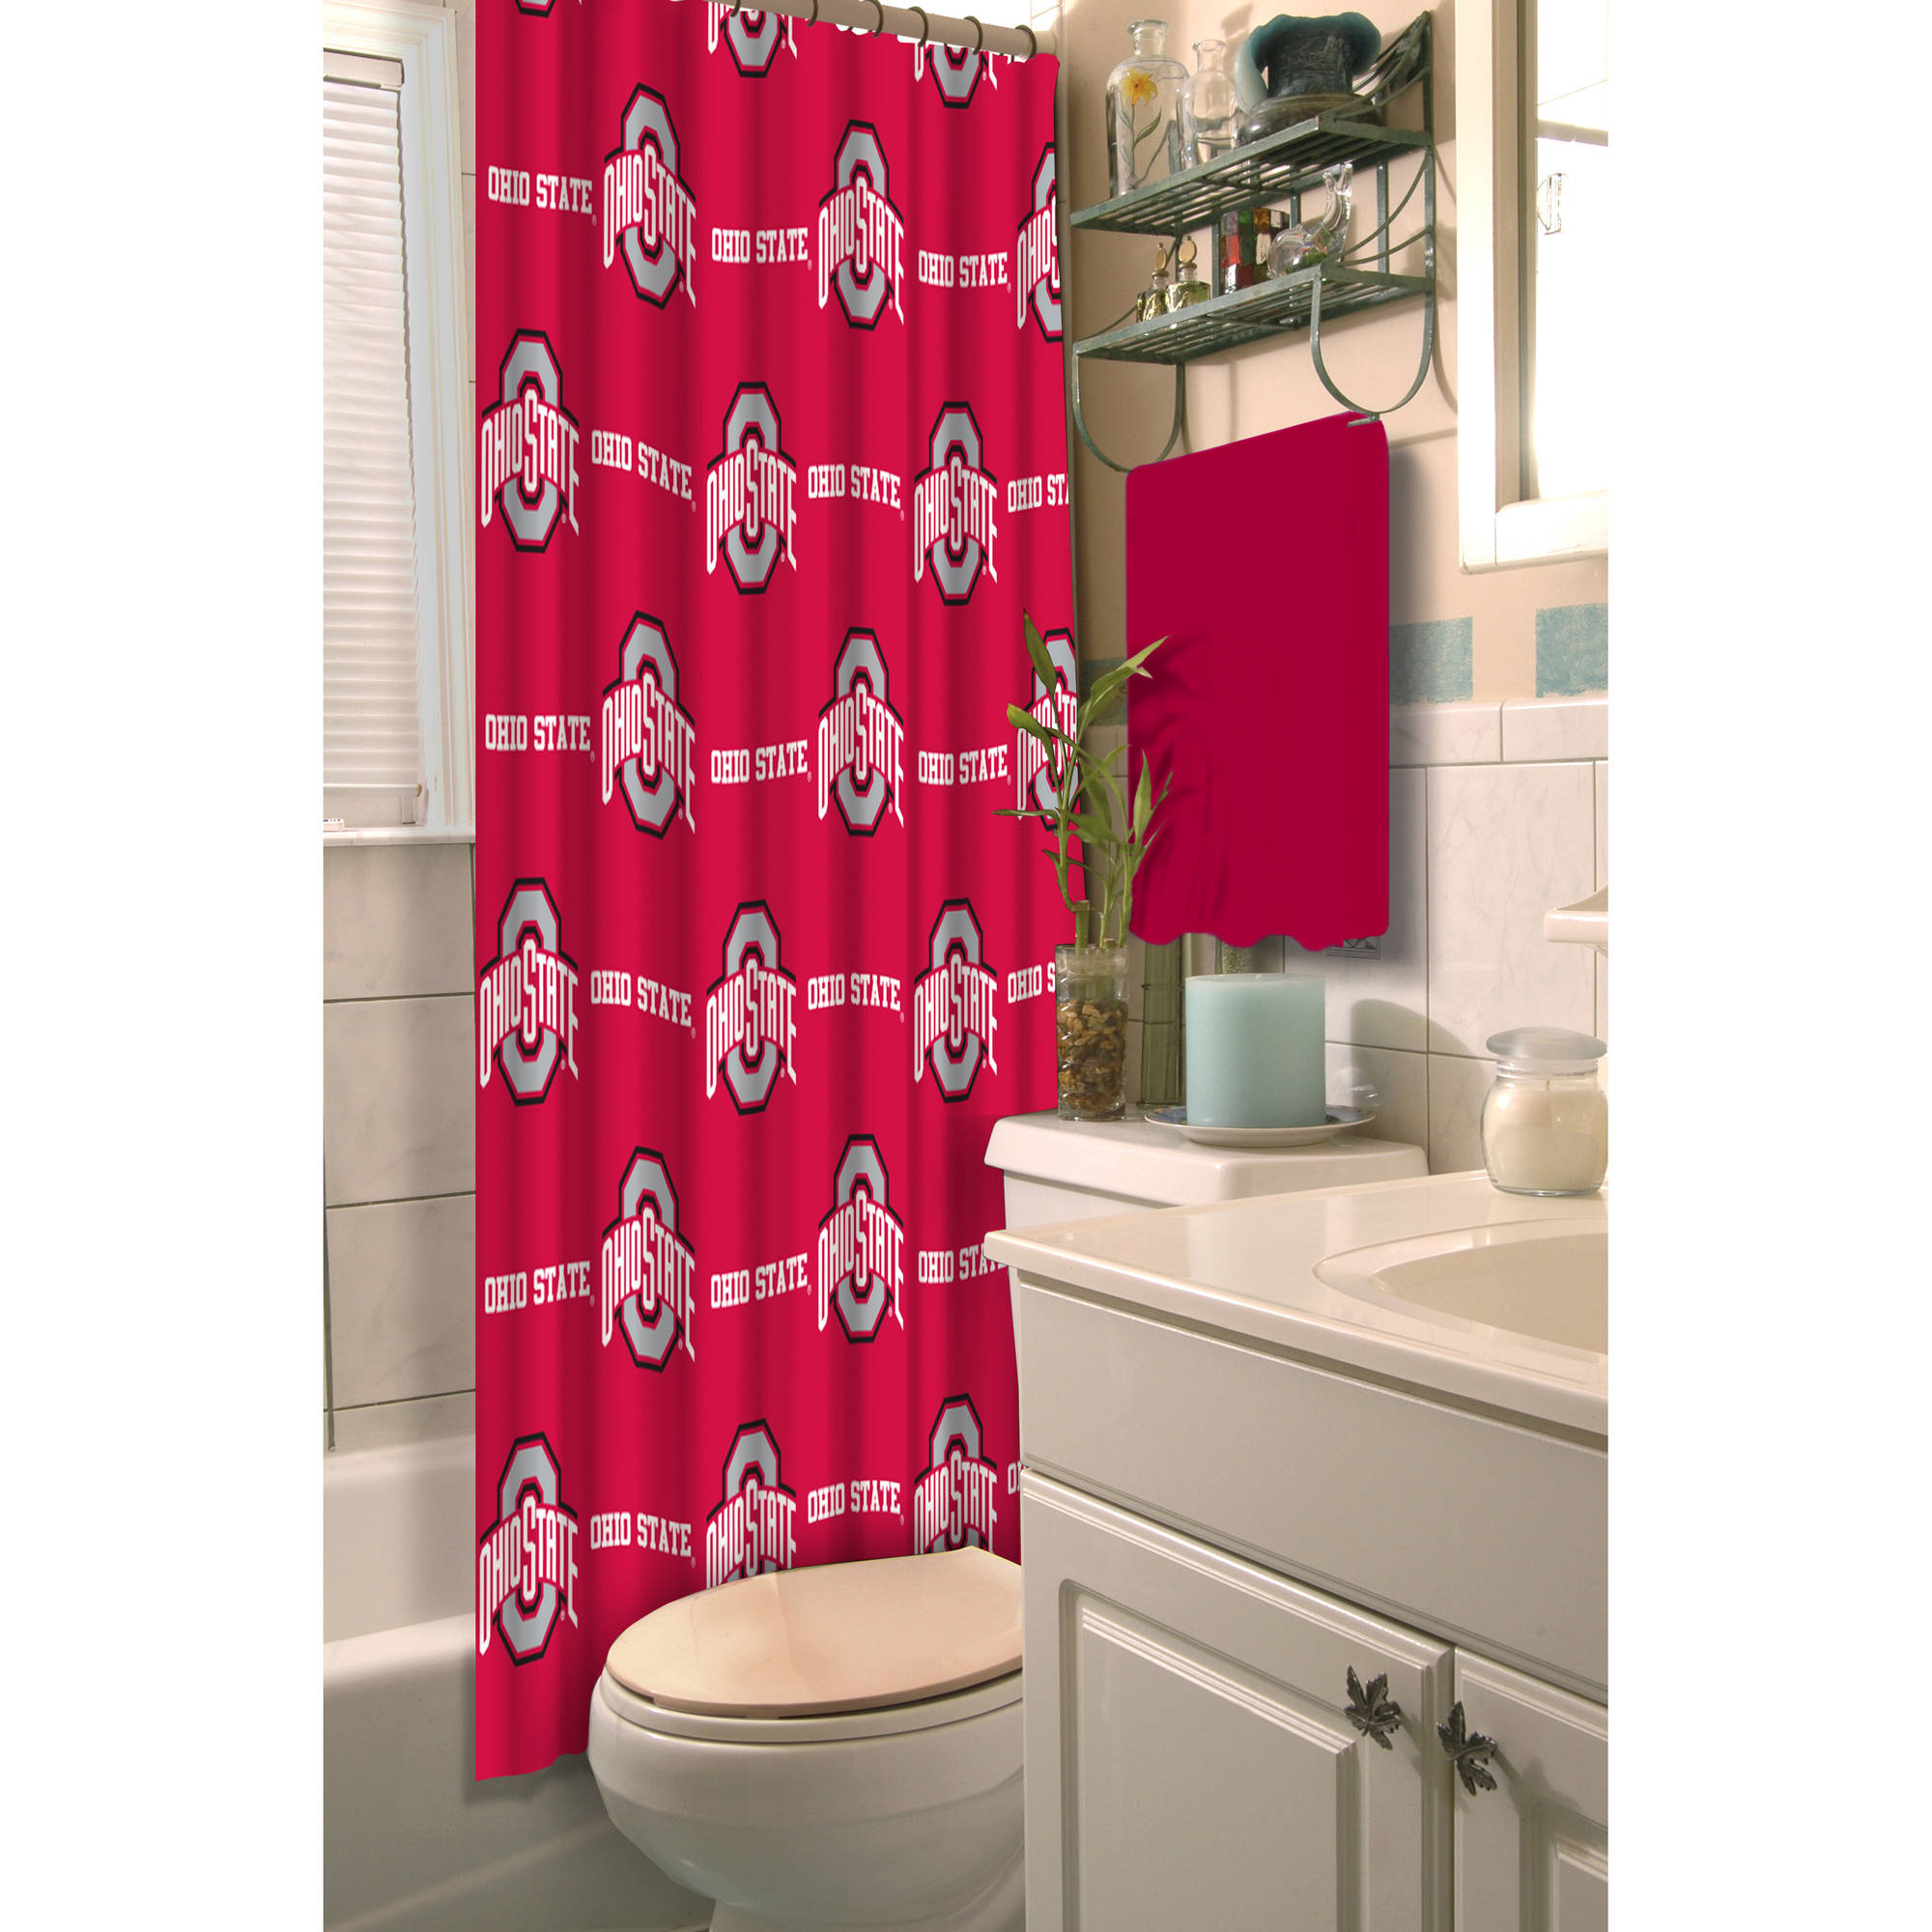 NCAA Ohio State University Decorative Bath Collection - Shower Curtain